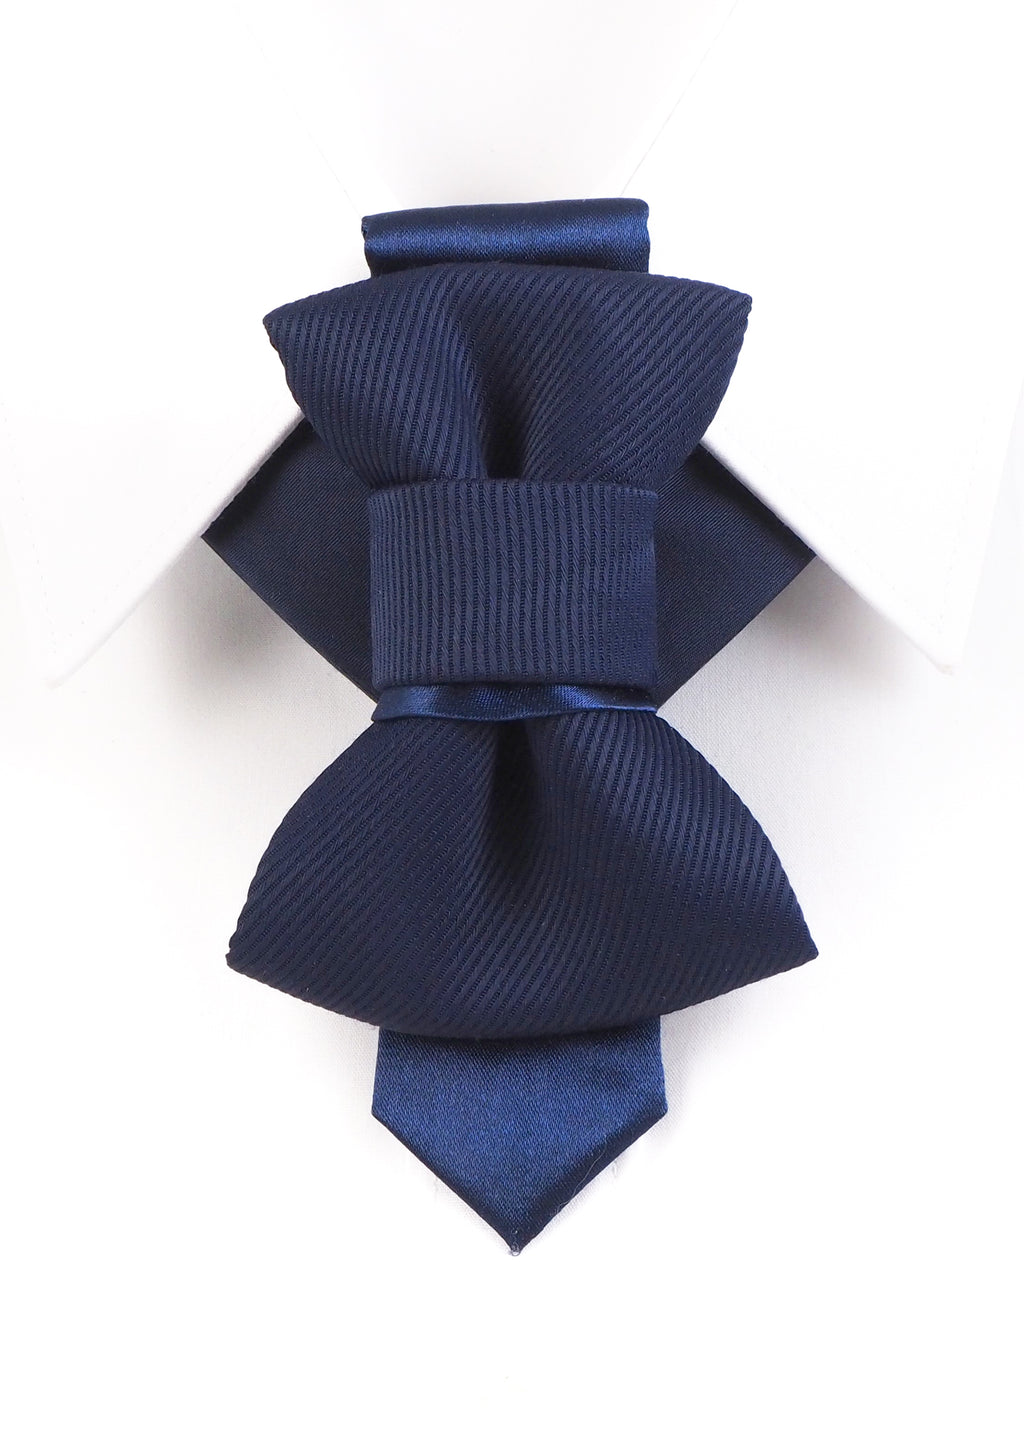 Bow Tie, Tie for wedding suite GOAL hopper tie Bow tie, Ruty Design hopper tie